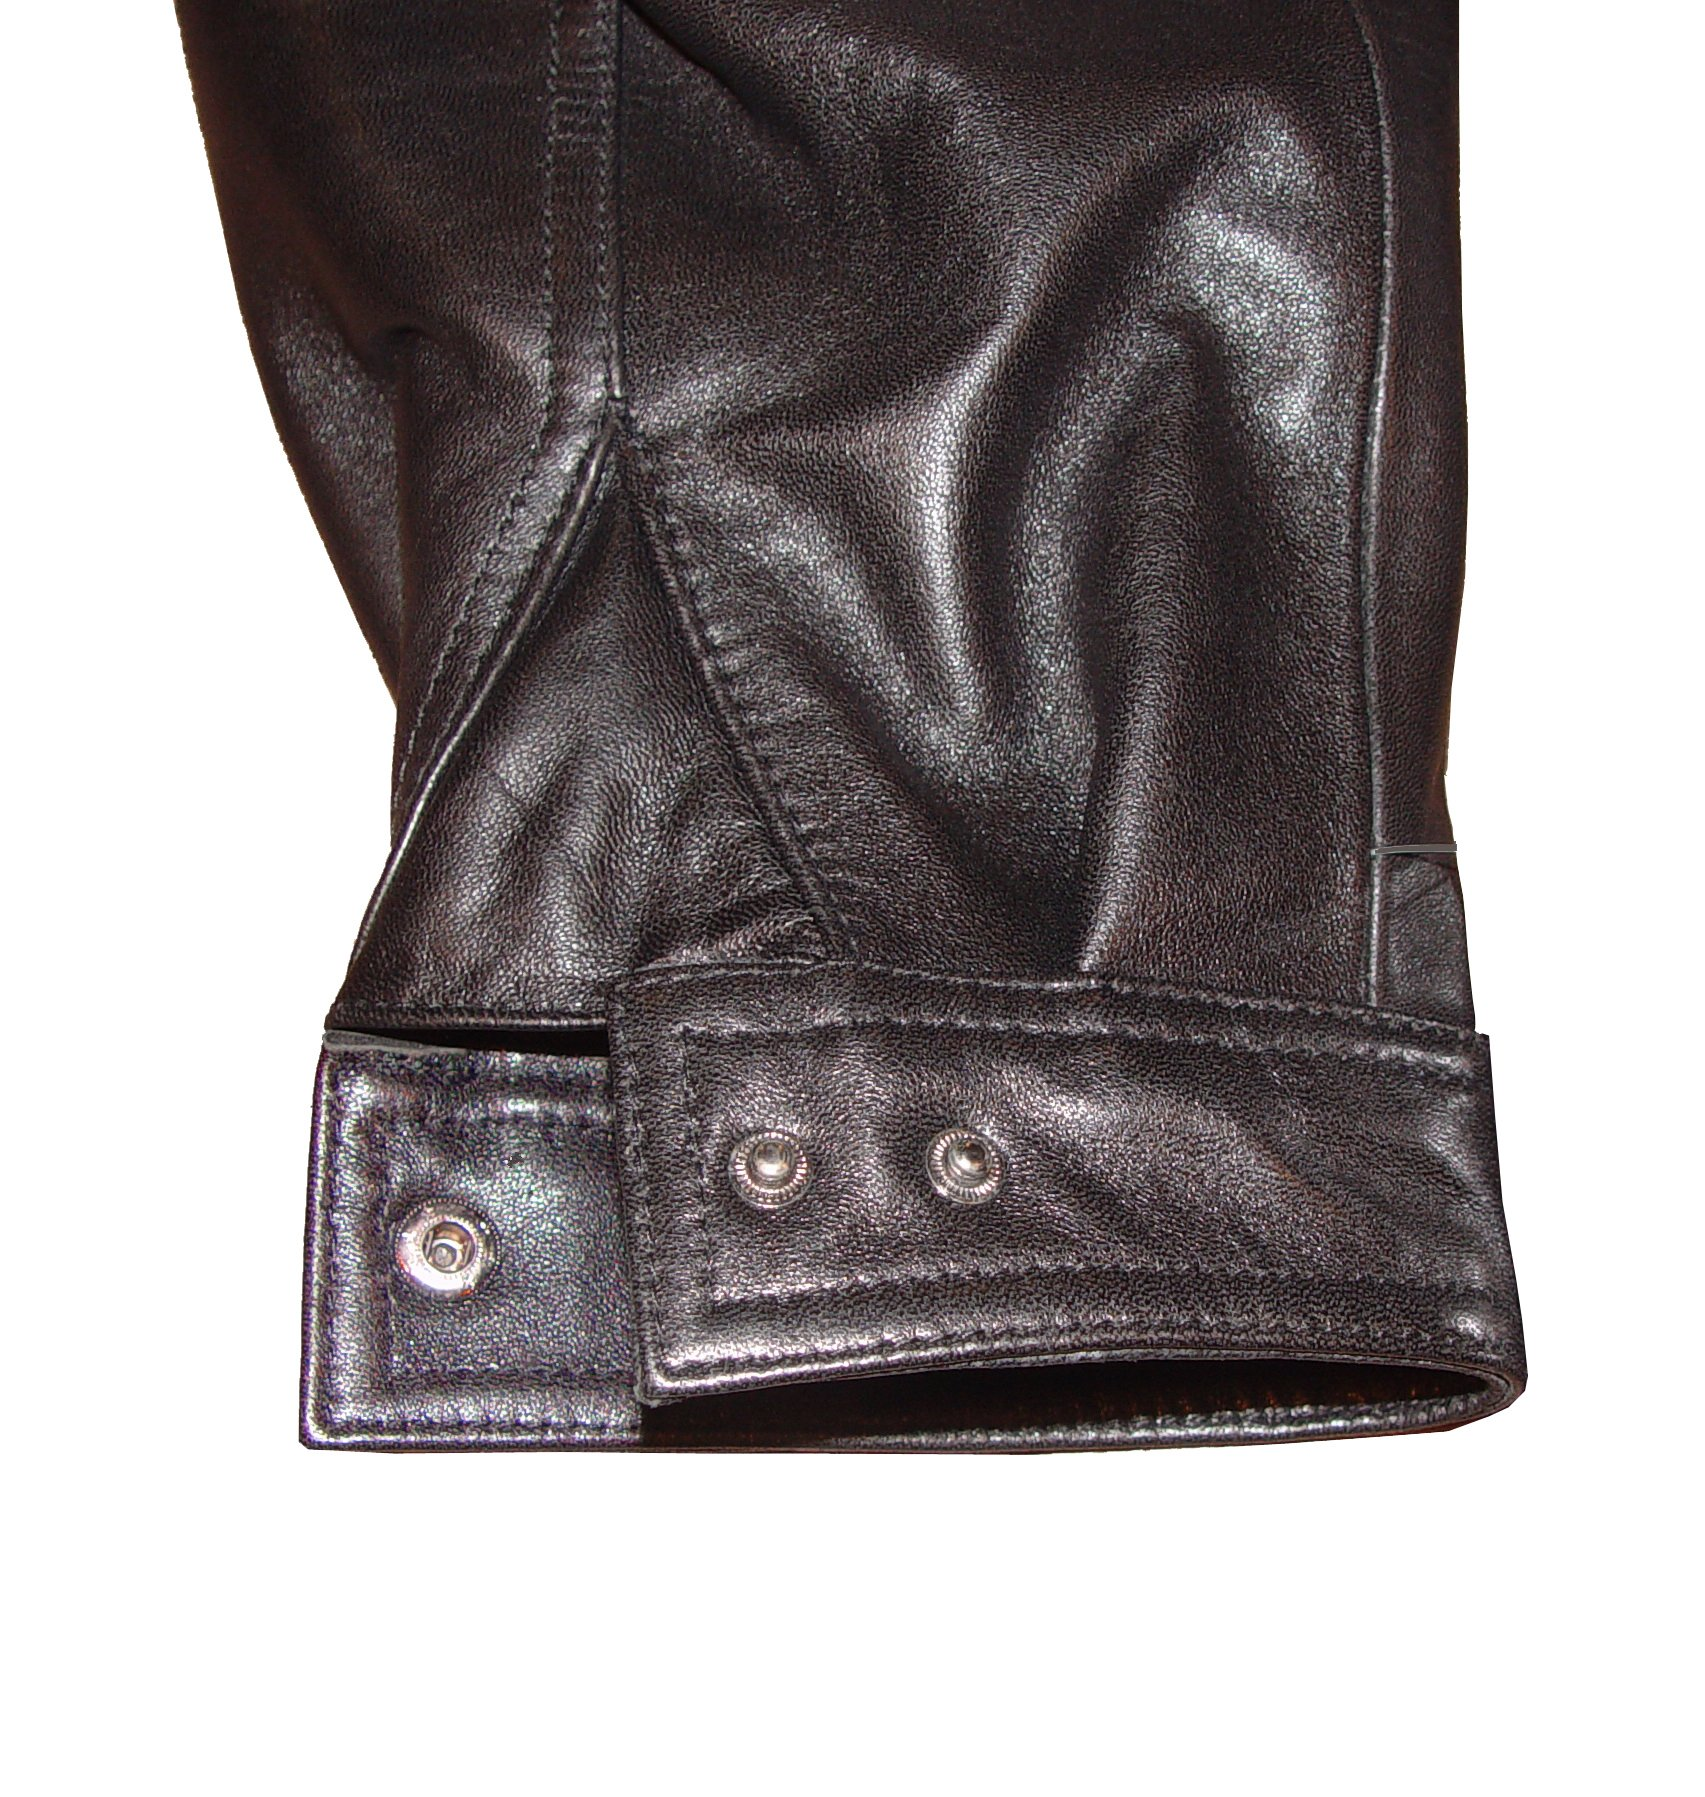 Nettailor 4188 Leather Jackets Clothes Ladies Soft Lamb by Paccilo (Image #7)